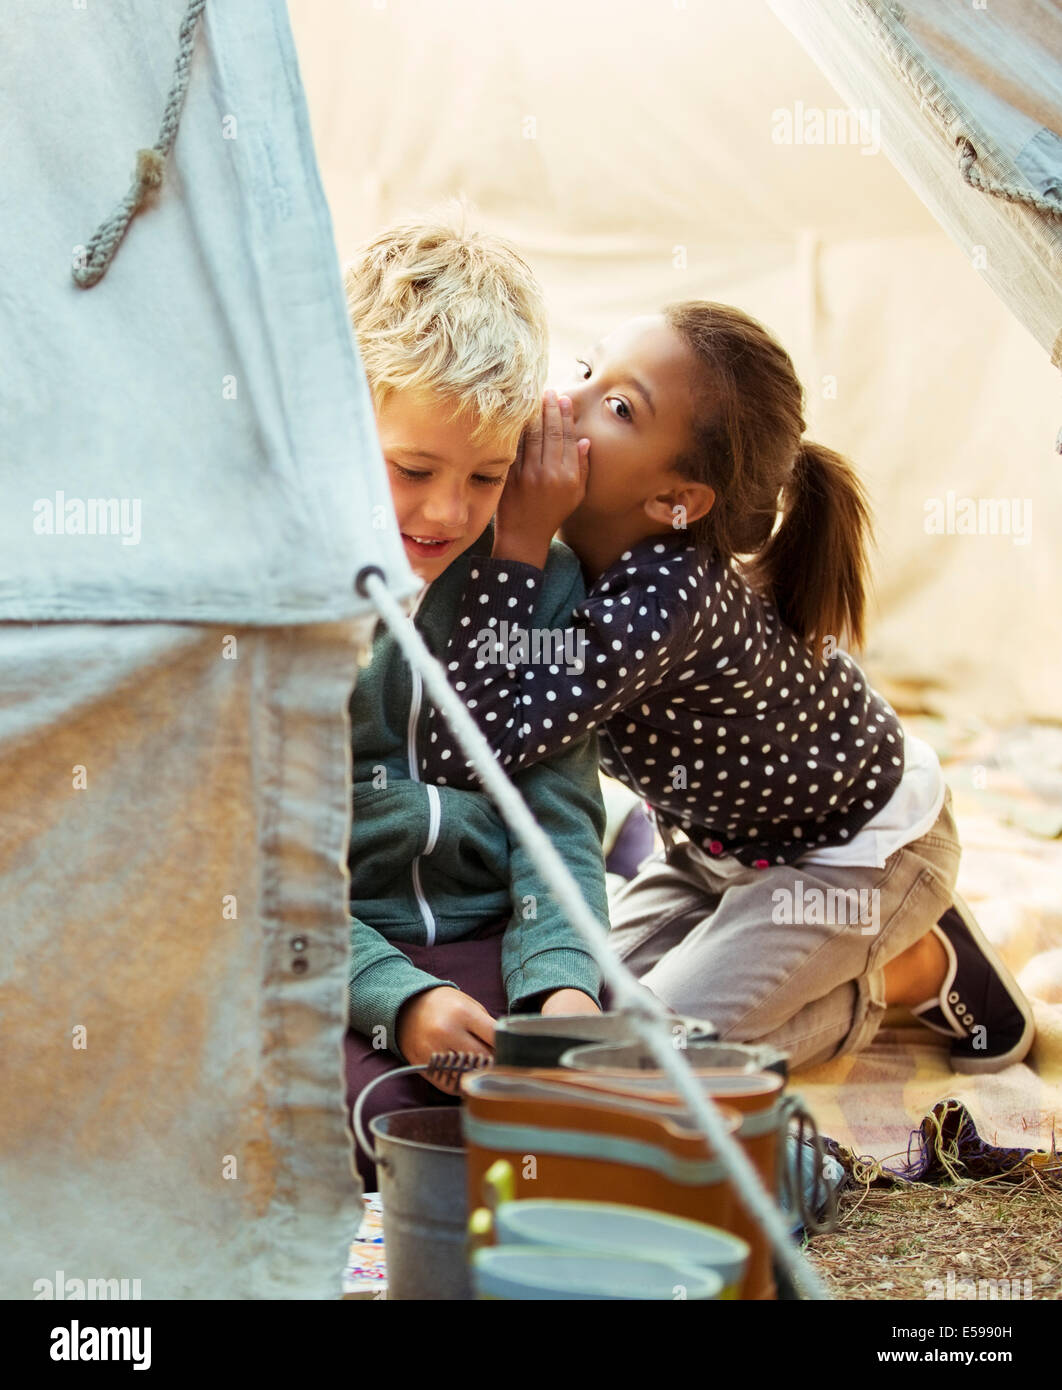 Children whispering in tent at campsite - Stock Image